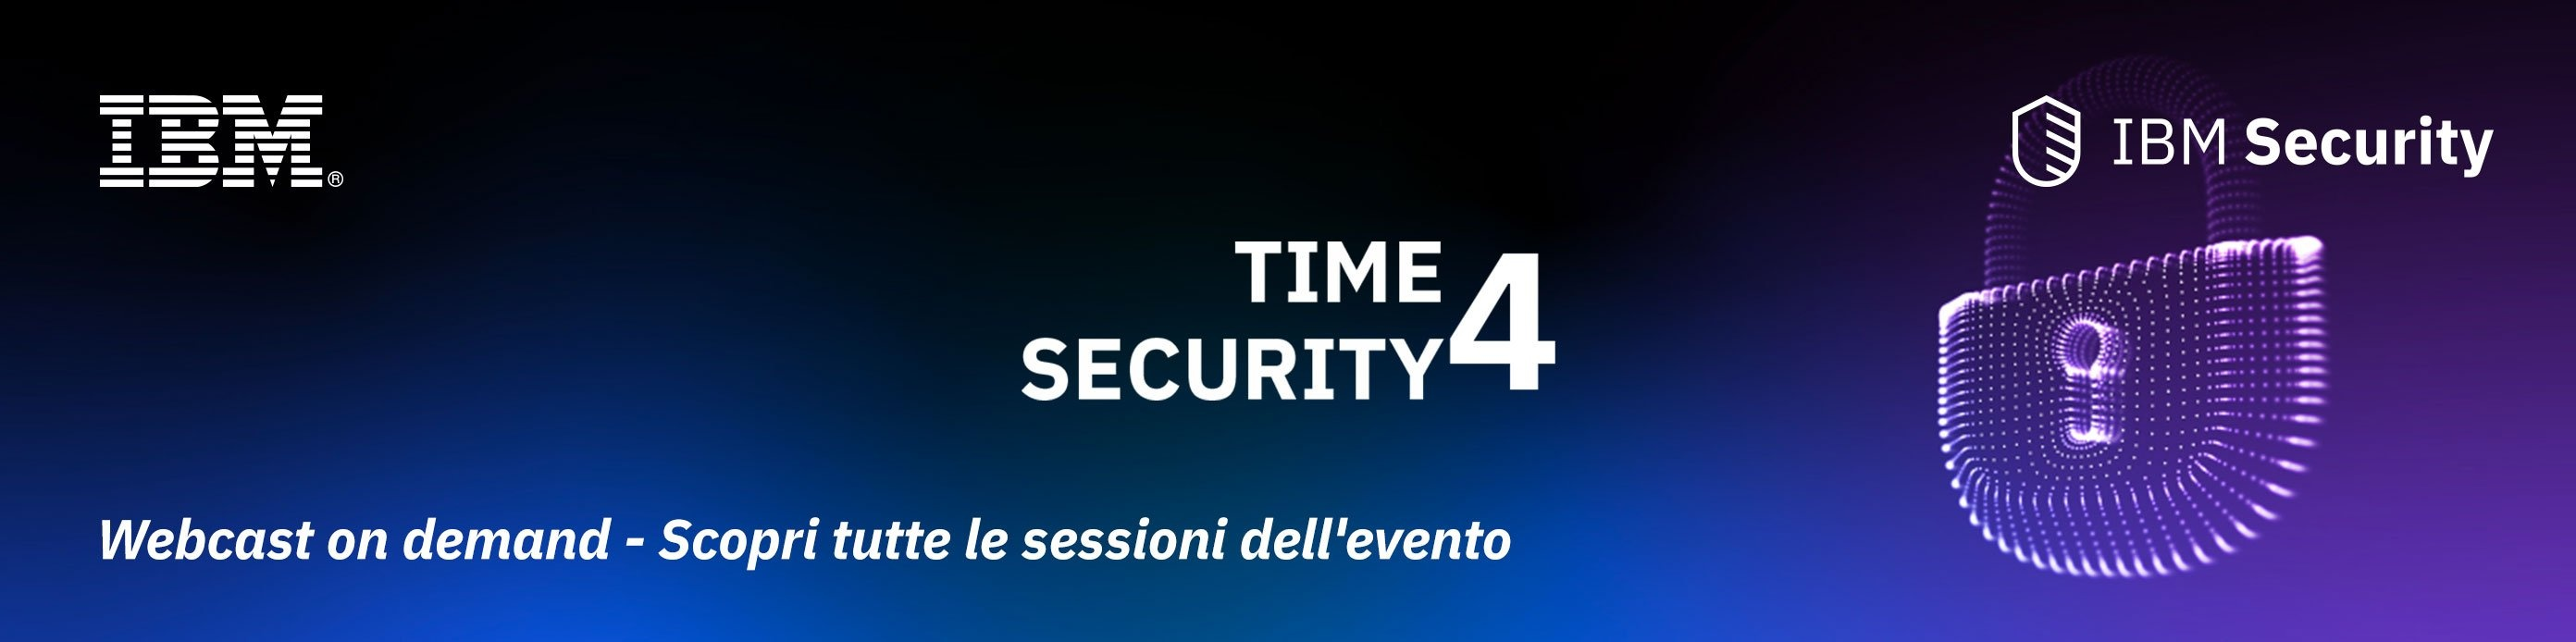 Time4Security - Webcast on demand